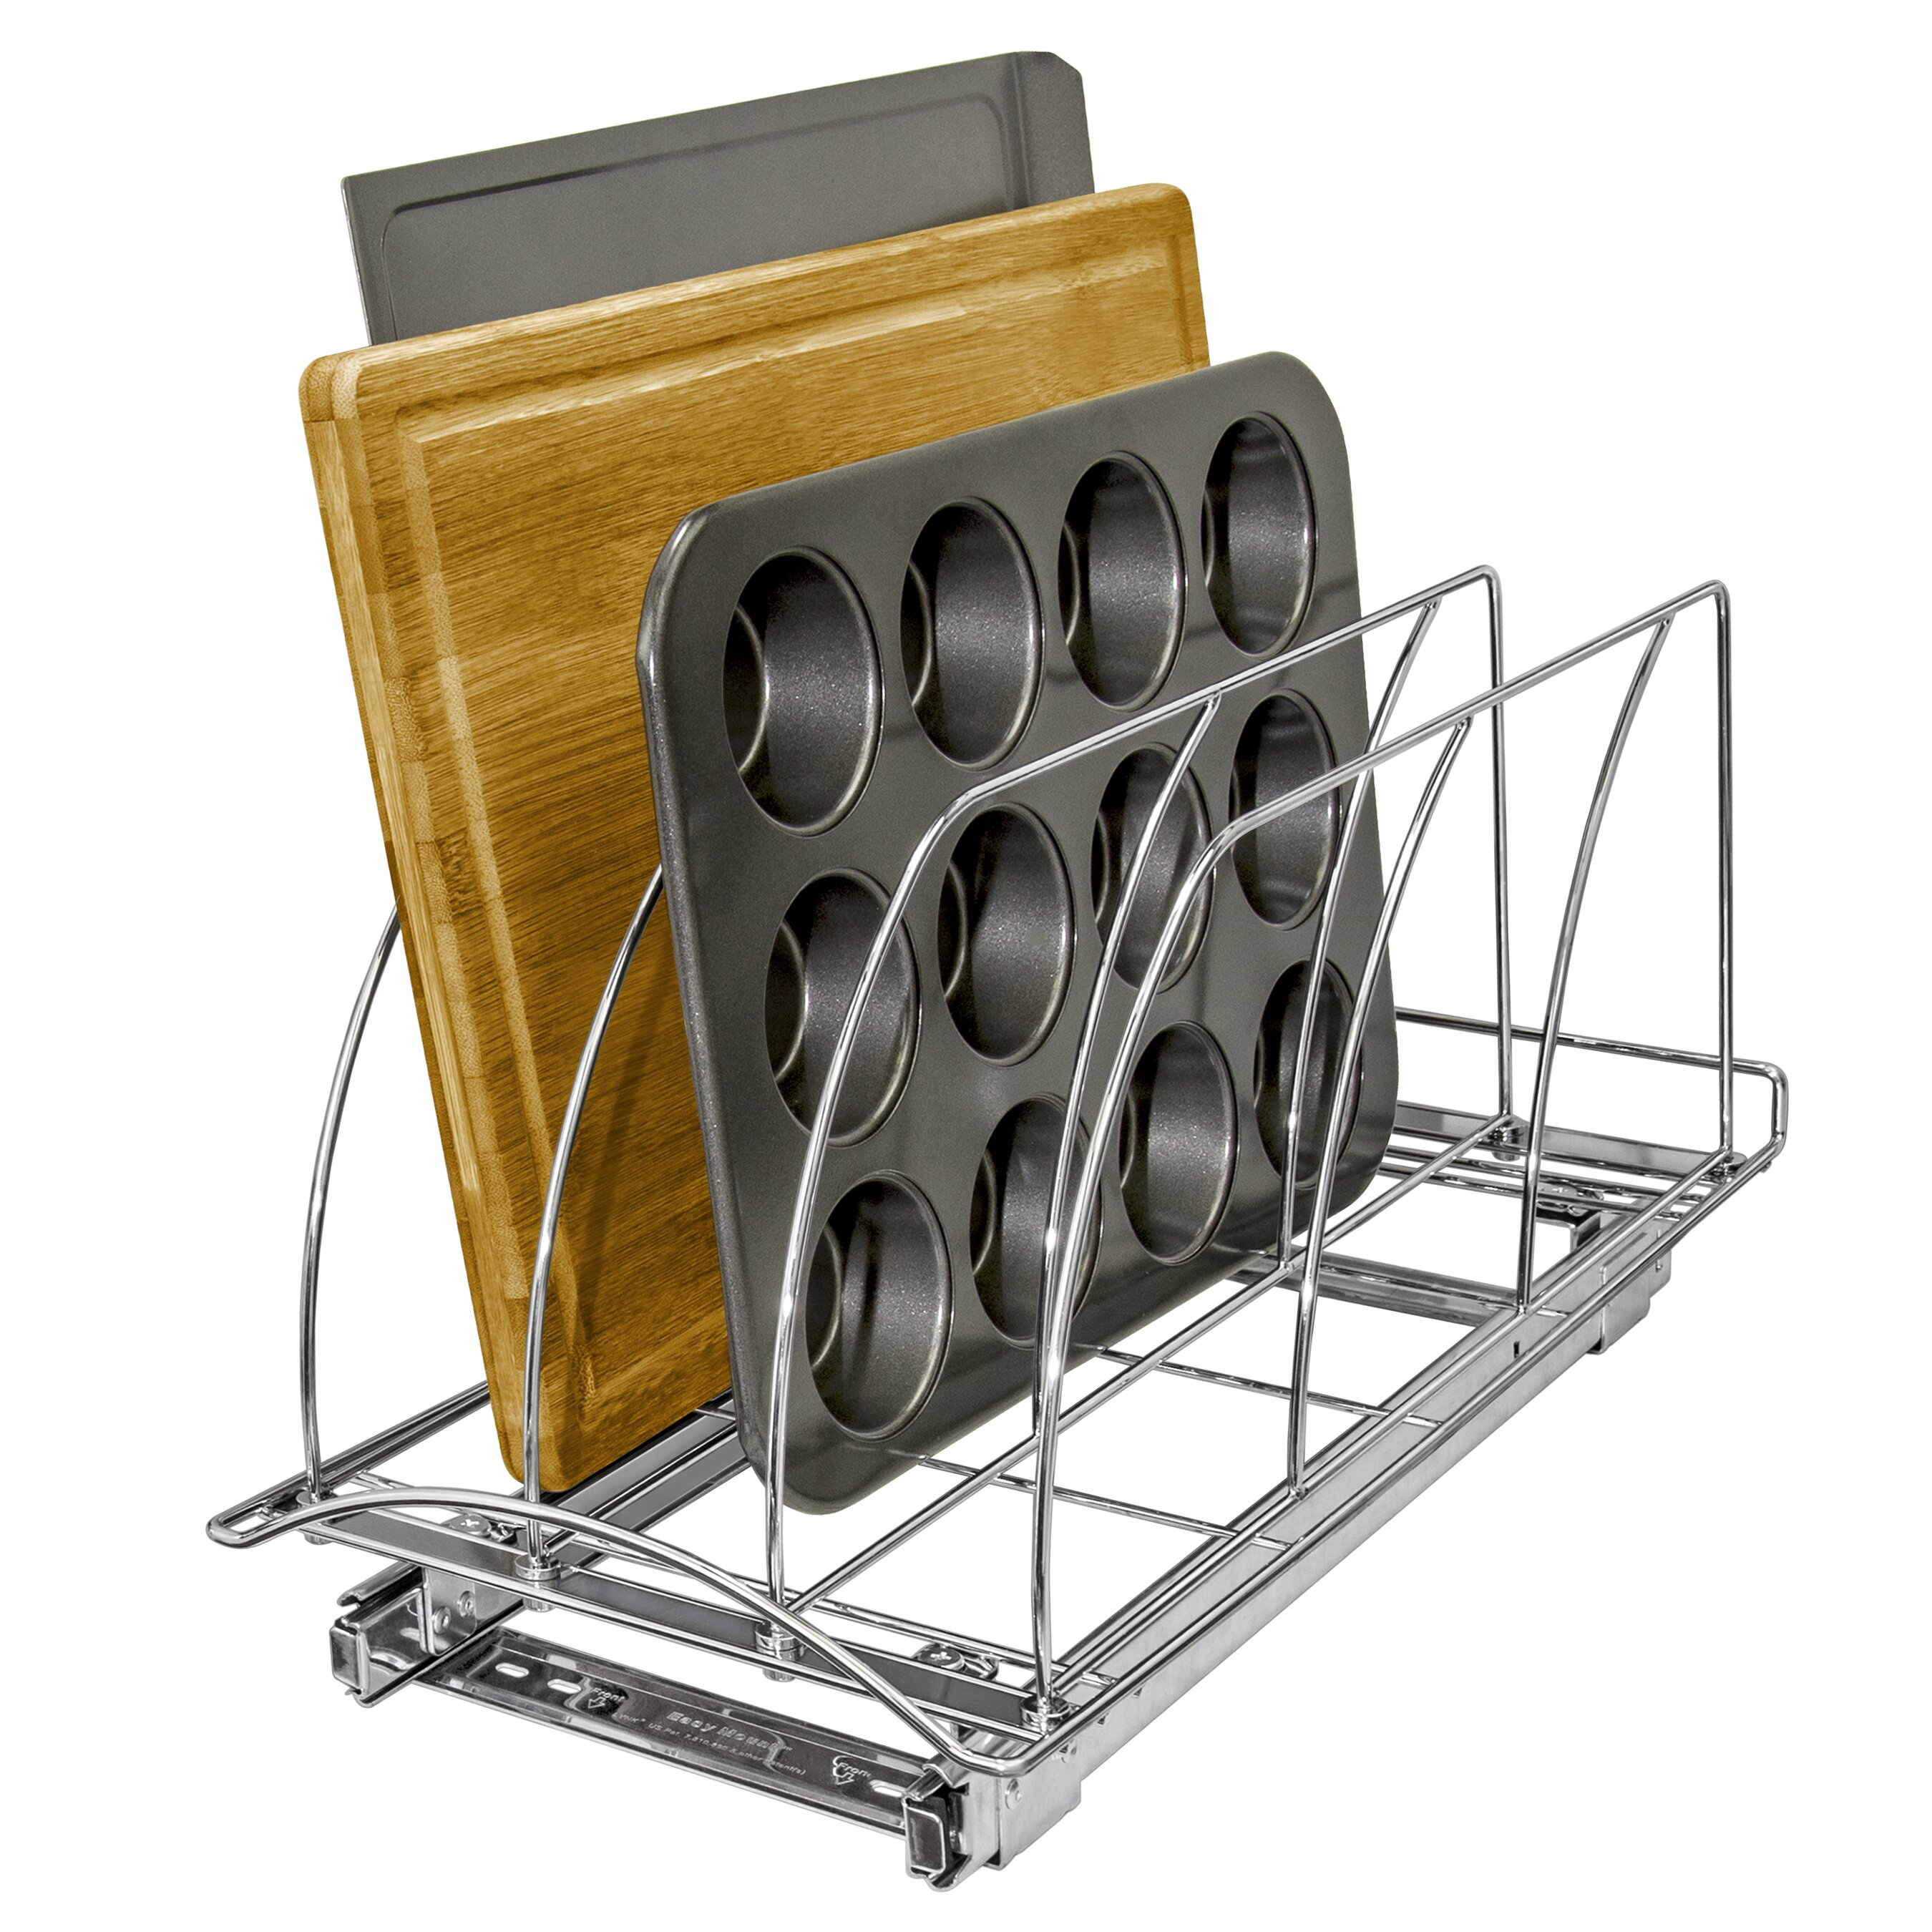 Lynk Roll Out Cabinet Organizer: Lynk Roll Out Cutting Board, Bakeware, And Tray Organizer